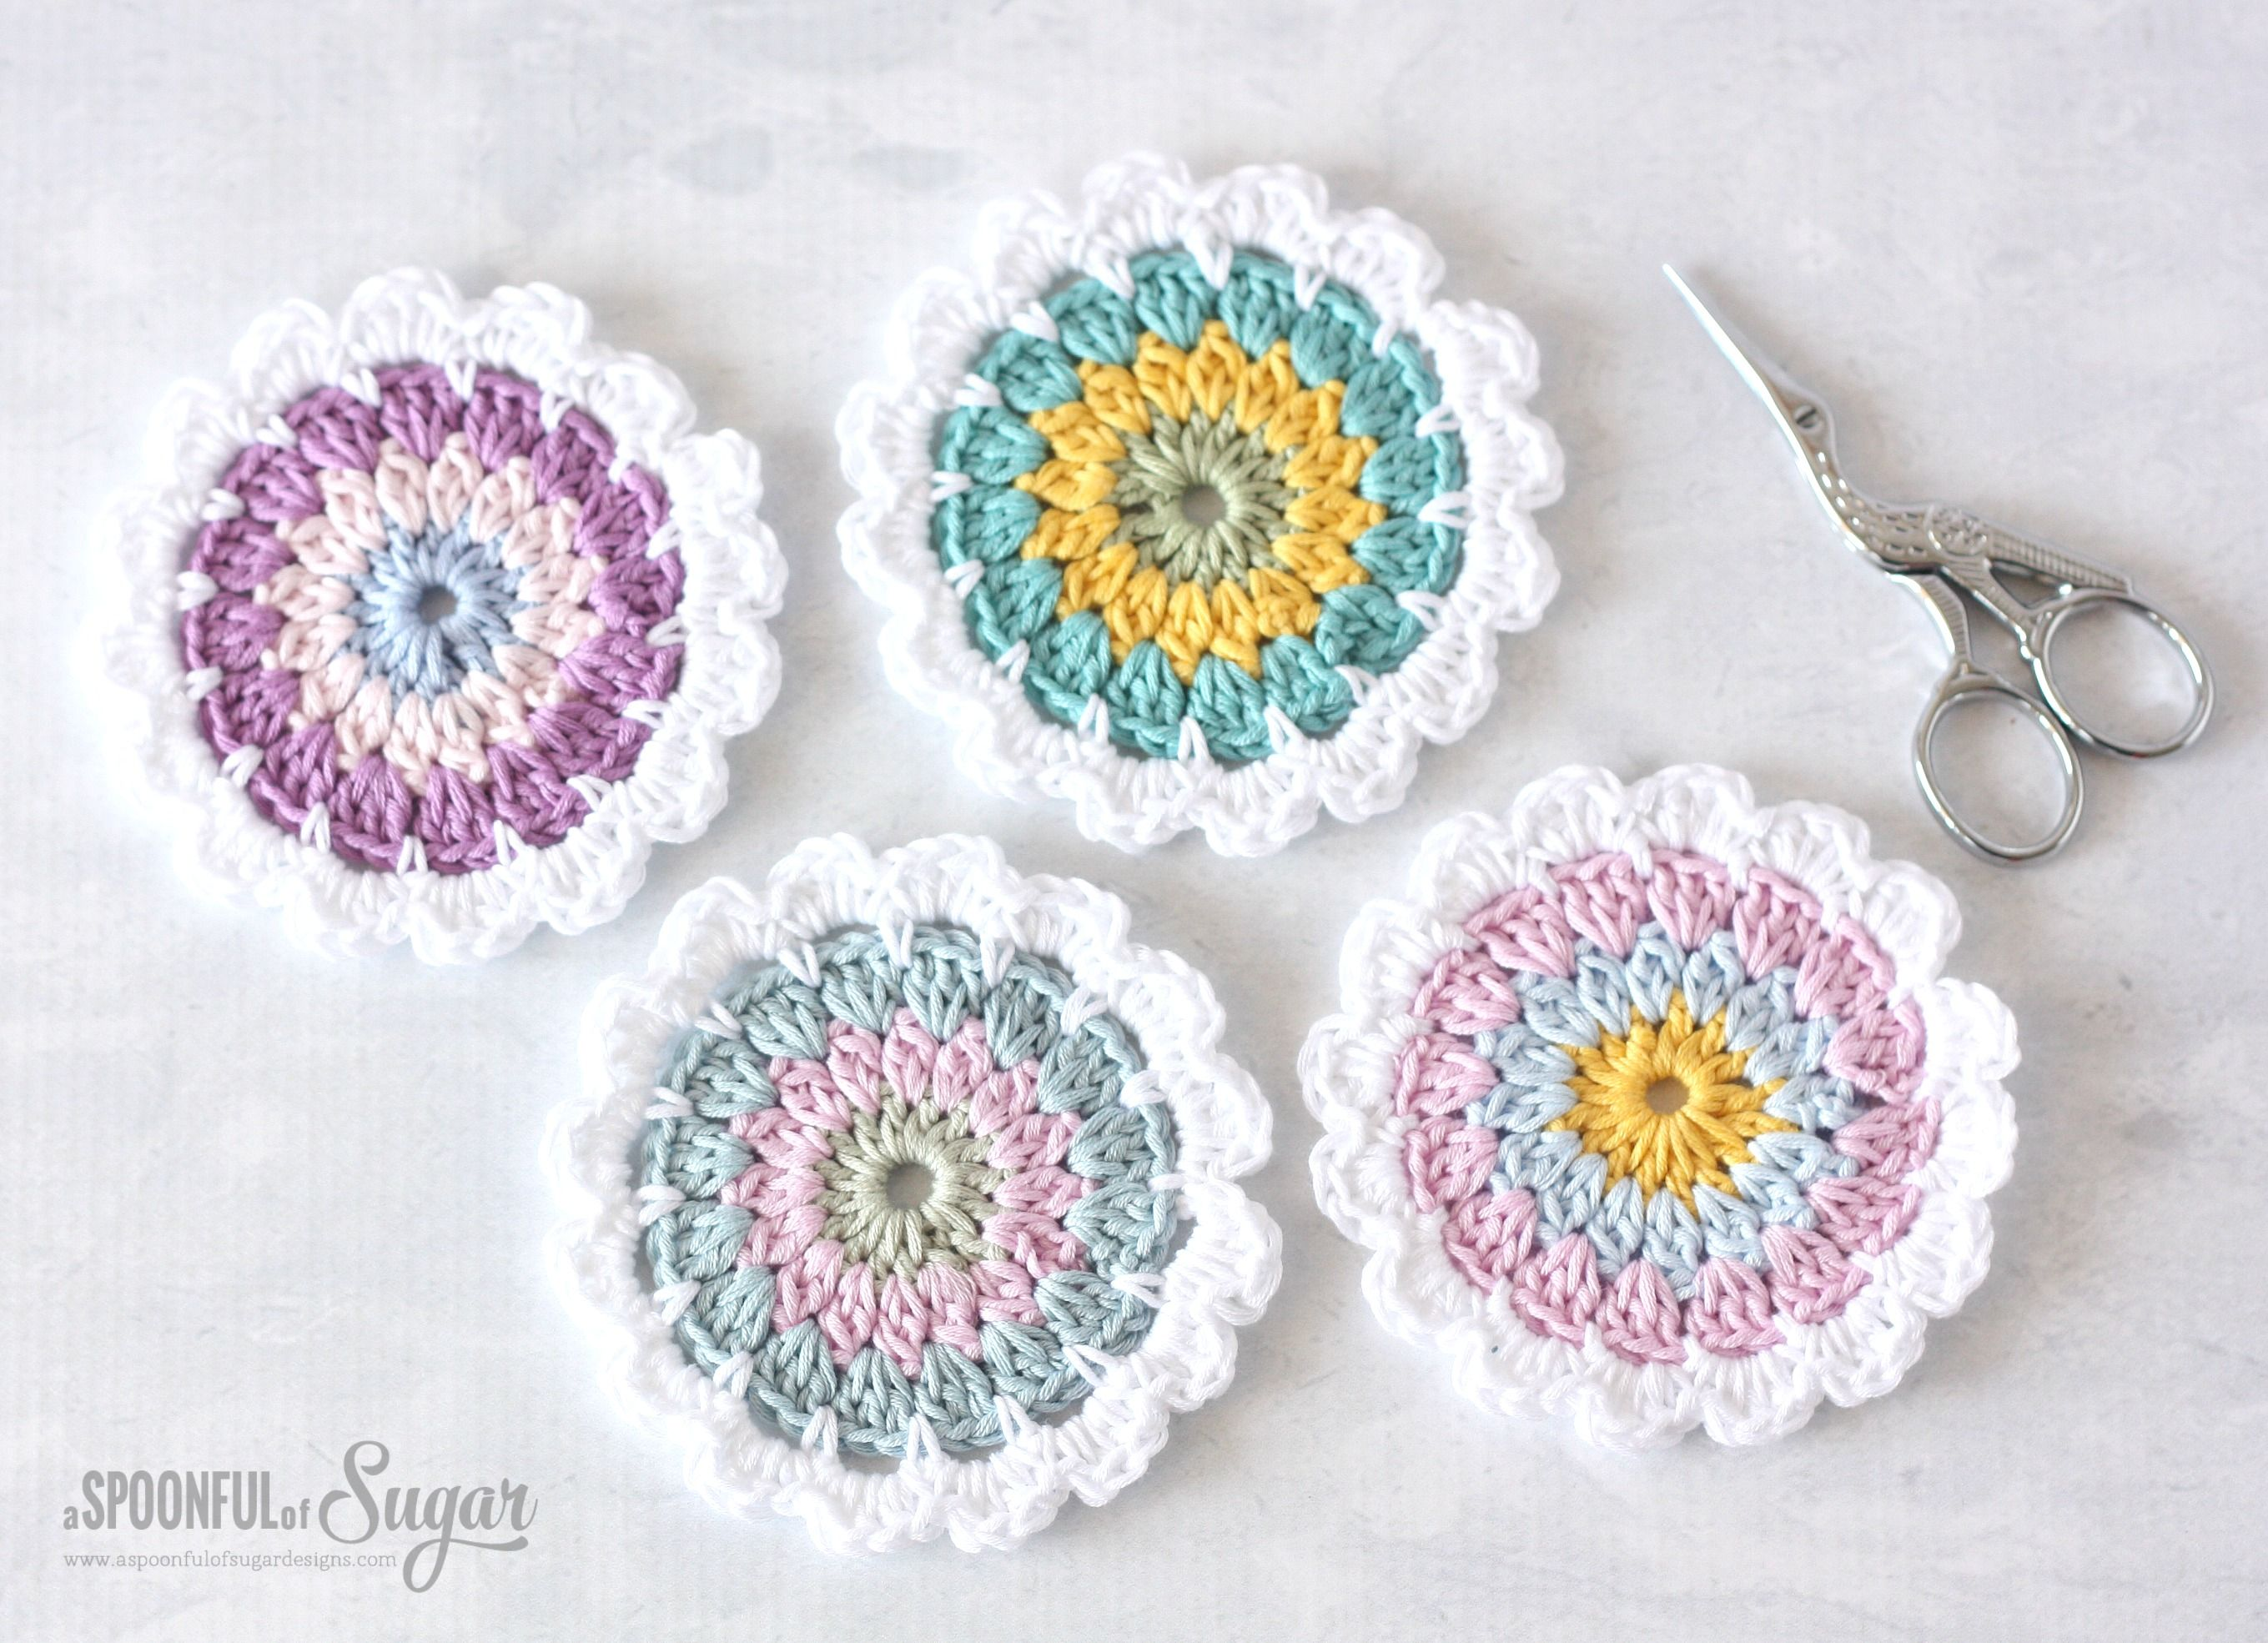 Flower coaster crochet pattern diy crochet pinterest crochet flower coaster crochet pattern bankloansurffo Images